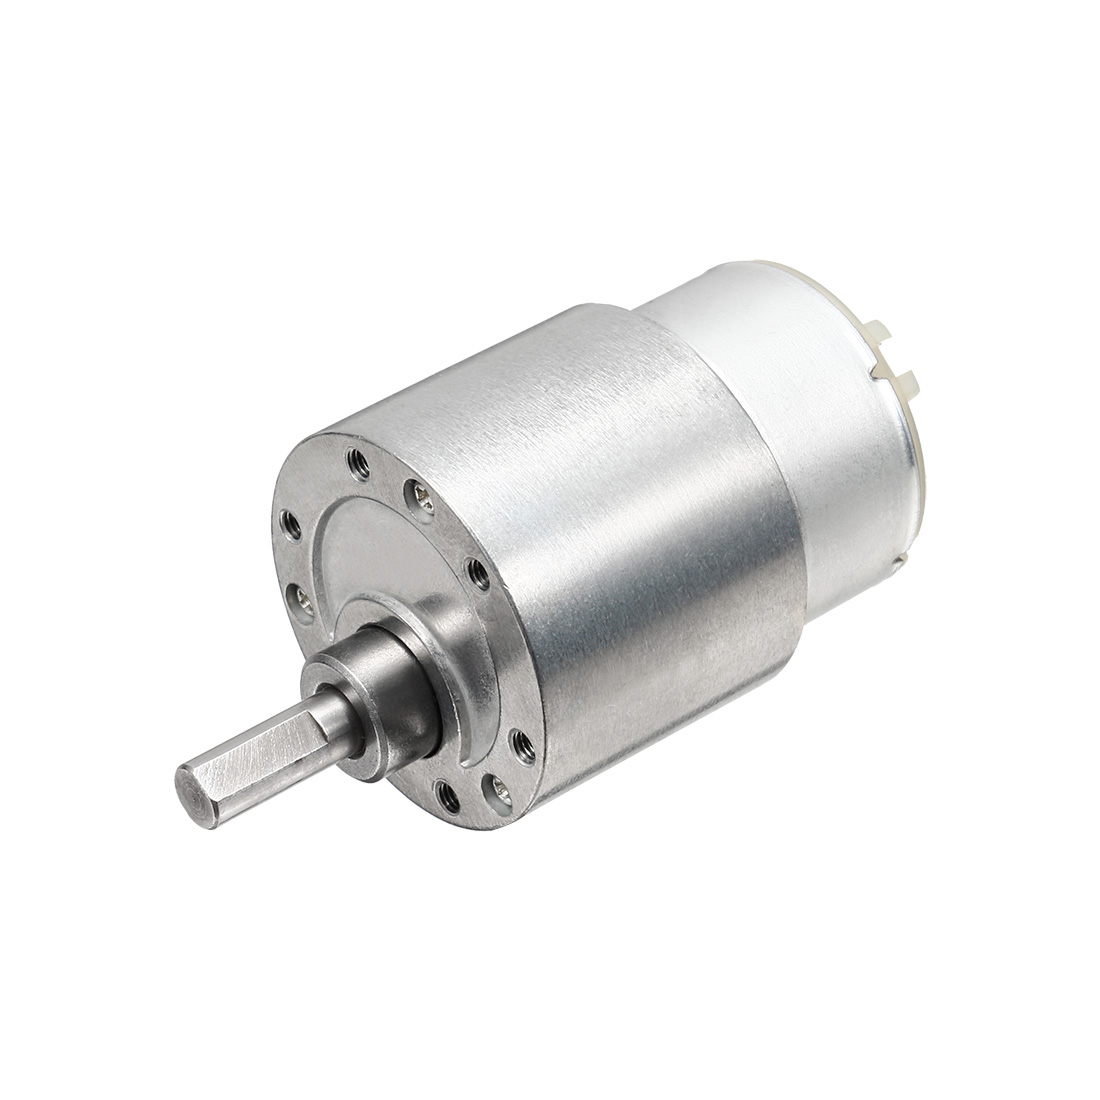 37mm Diameter 30RPM 12V 0.4A Round DC Speed Reduce Geared Motor